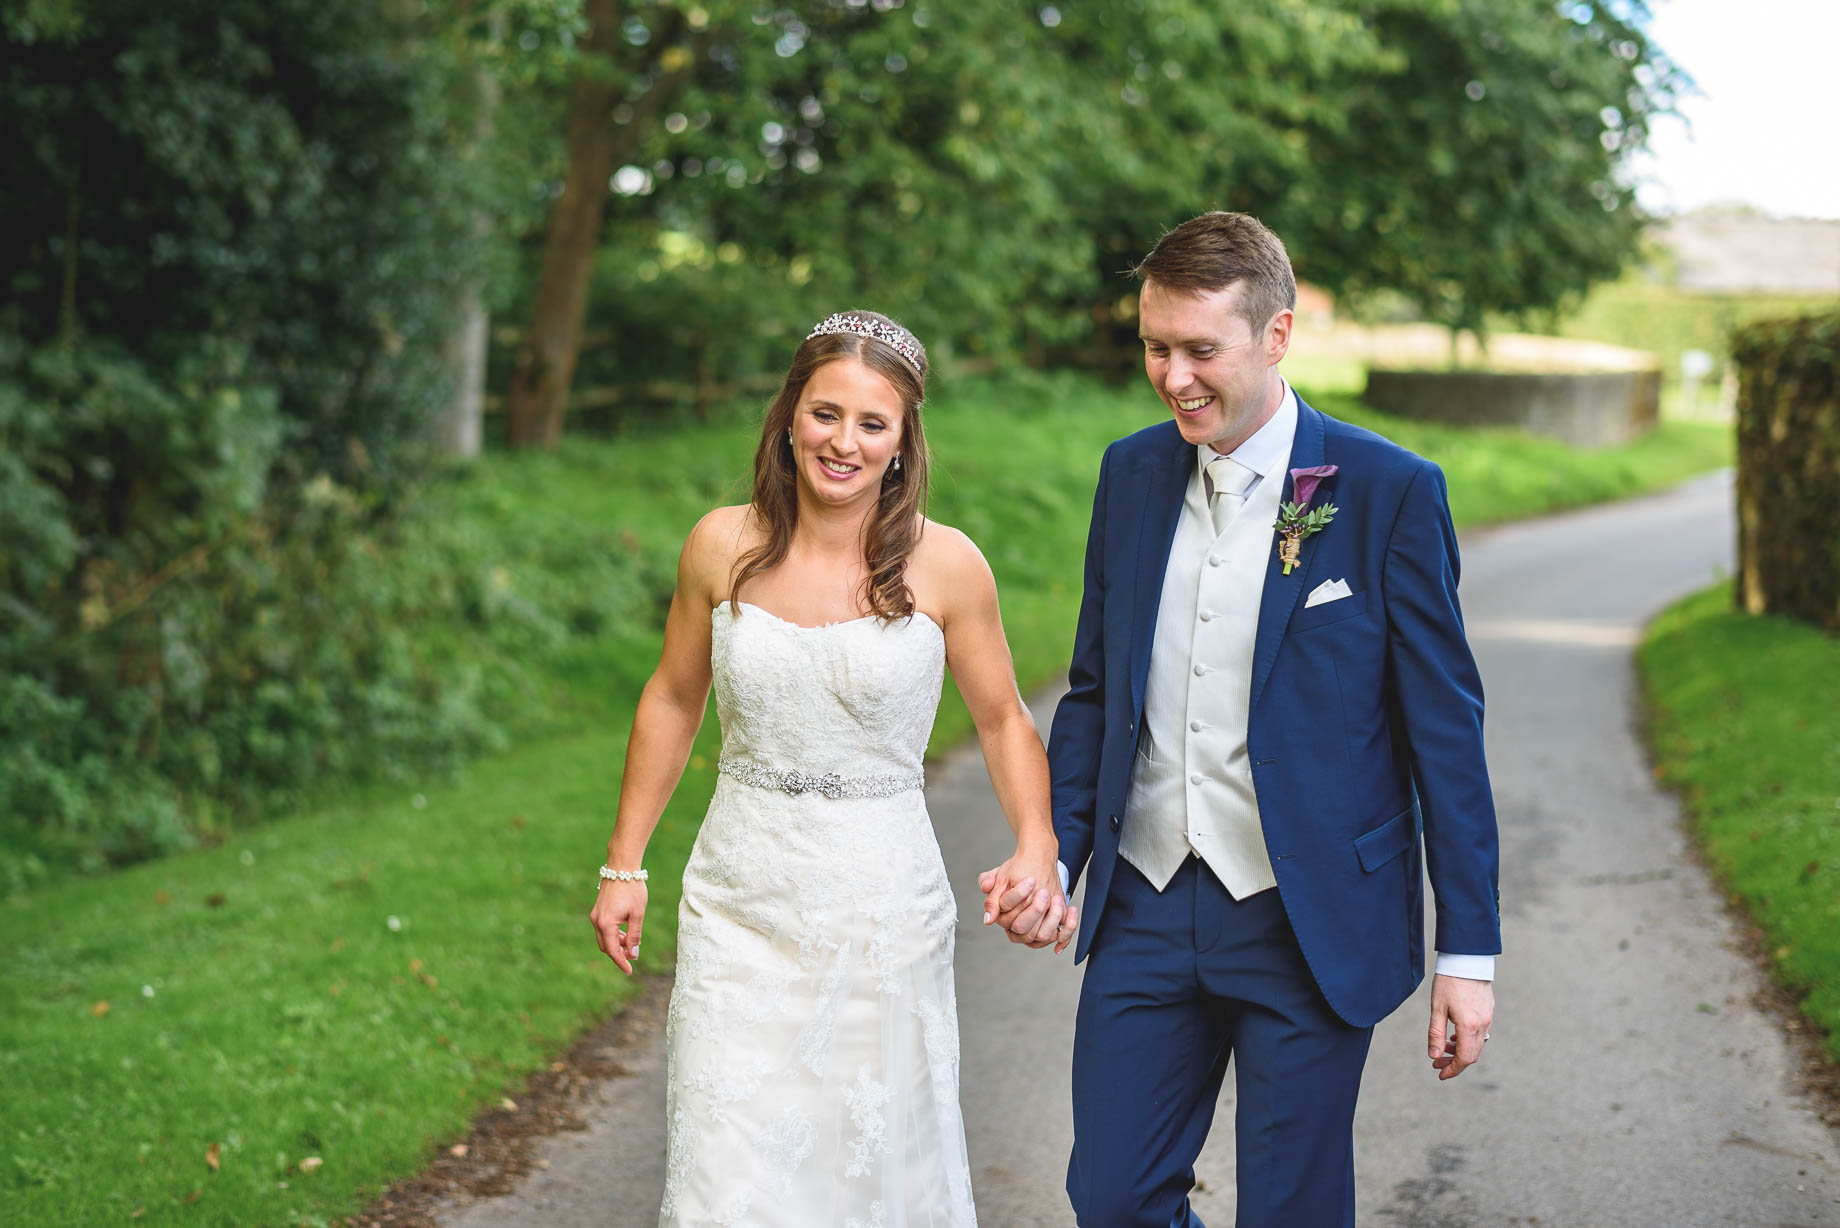 Gate Street Barn wedding photography - Guy Collier - Claire and Andy (112 of 192)